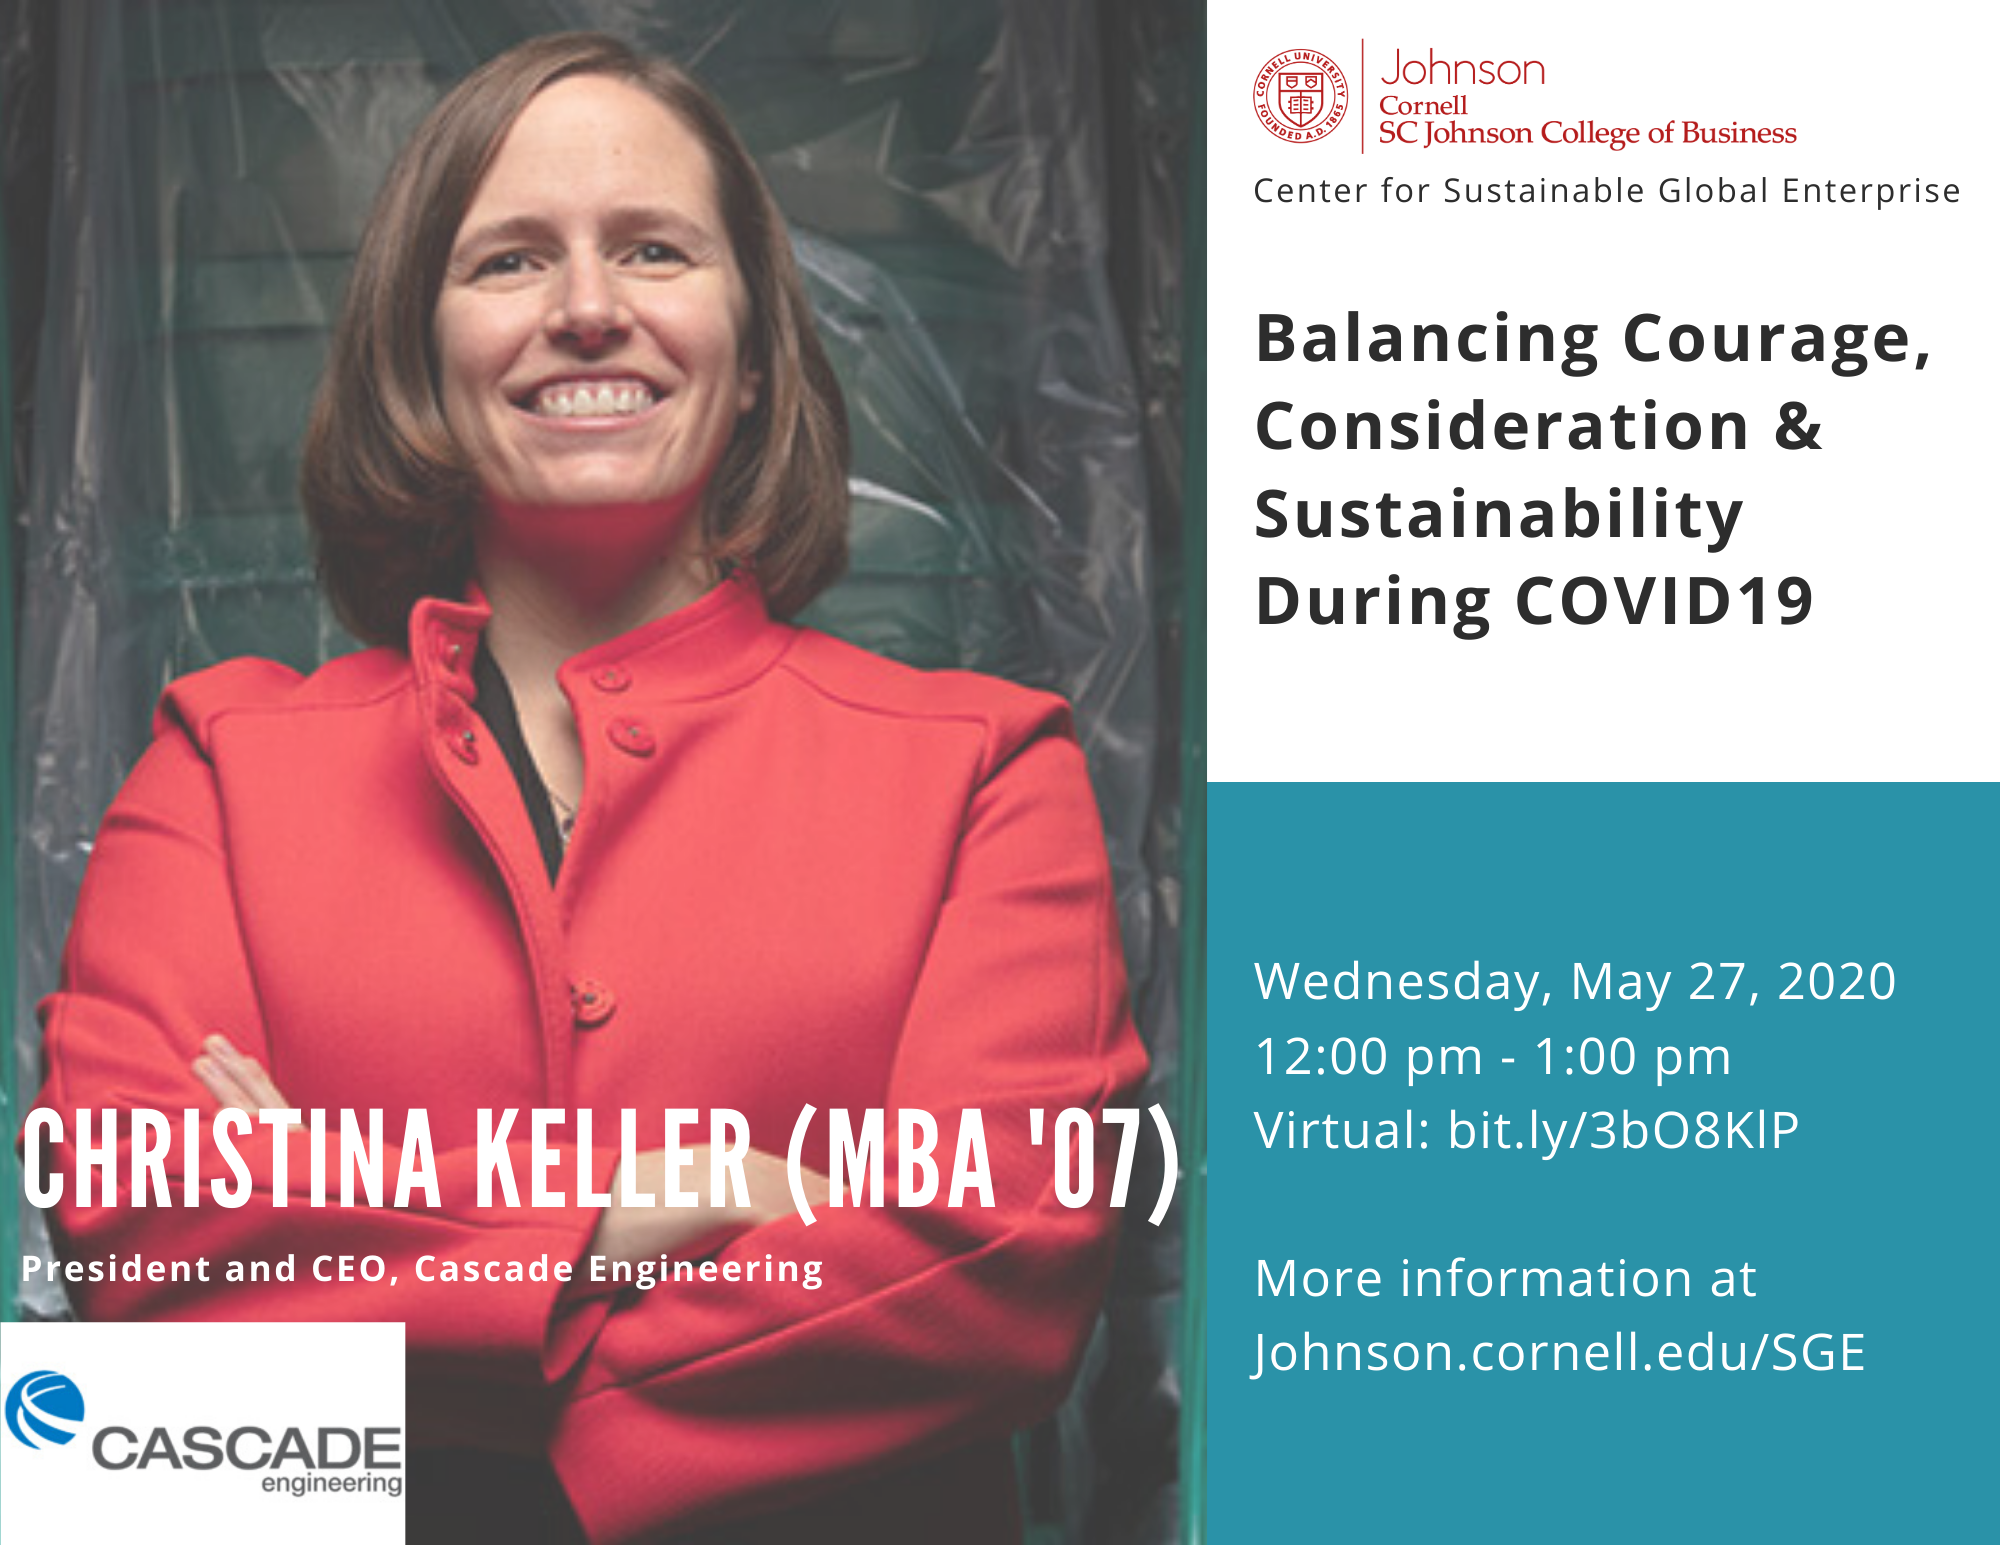 Balancing courage, consideration and sustainability during COVID19: A discussion with Christina Keller, MBA'07, president and CEO at Cascade Engineering